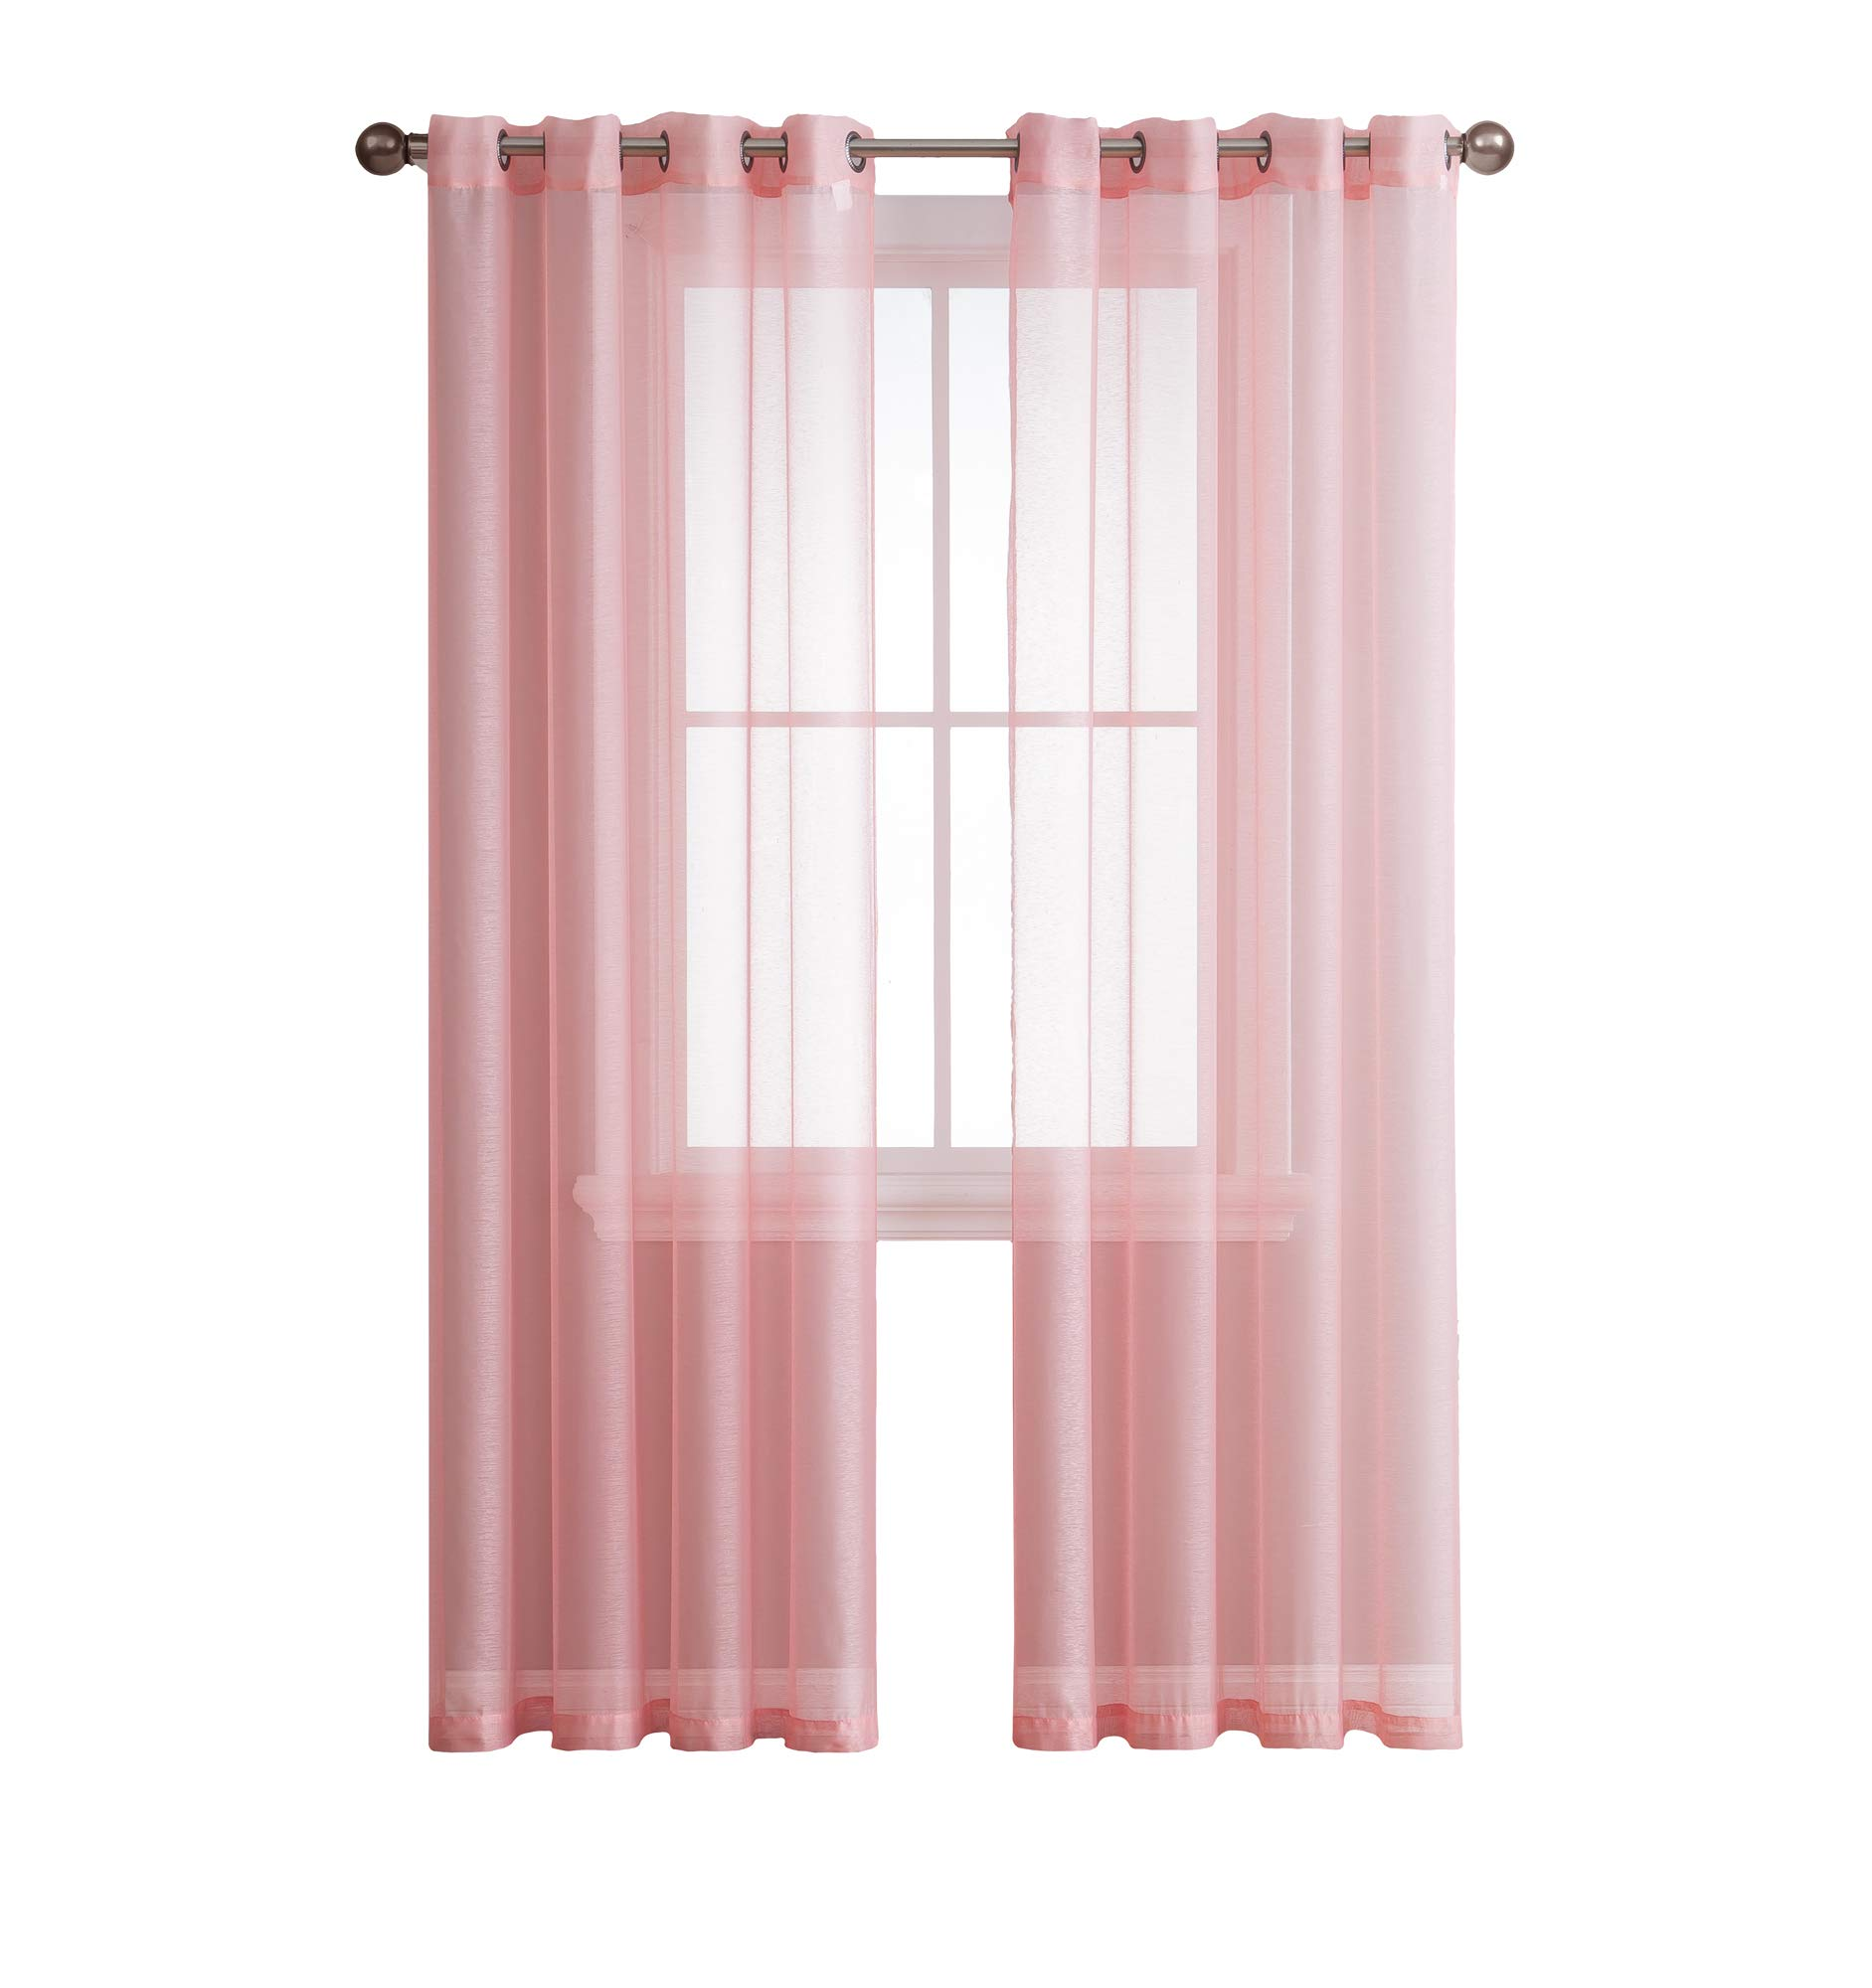 Jane - Rod Pocket Semi-Sheer Curtains - 2 Pieces - Total Size 108'' W x 72'' L - Natural Light Flow Material Durable - for Bedroom - Living Room - Kid's Room and Kitchen (Rose)